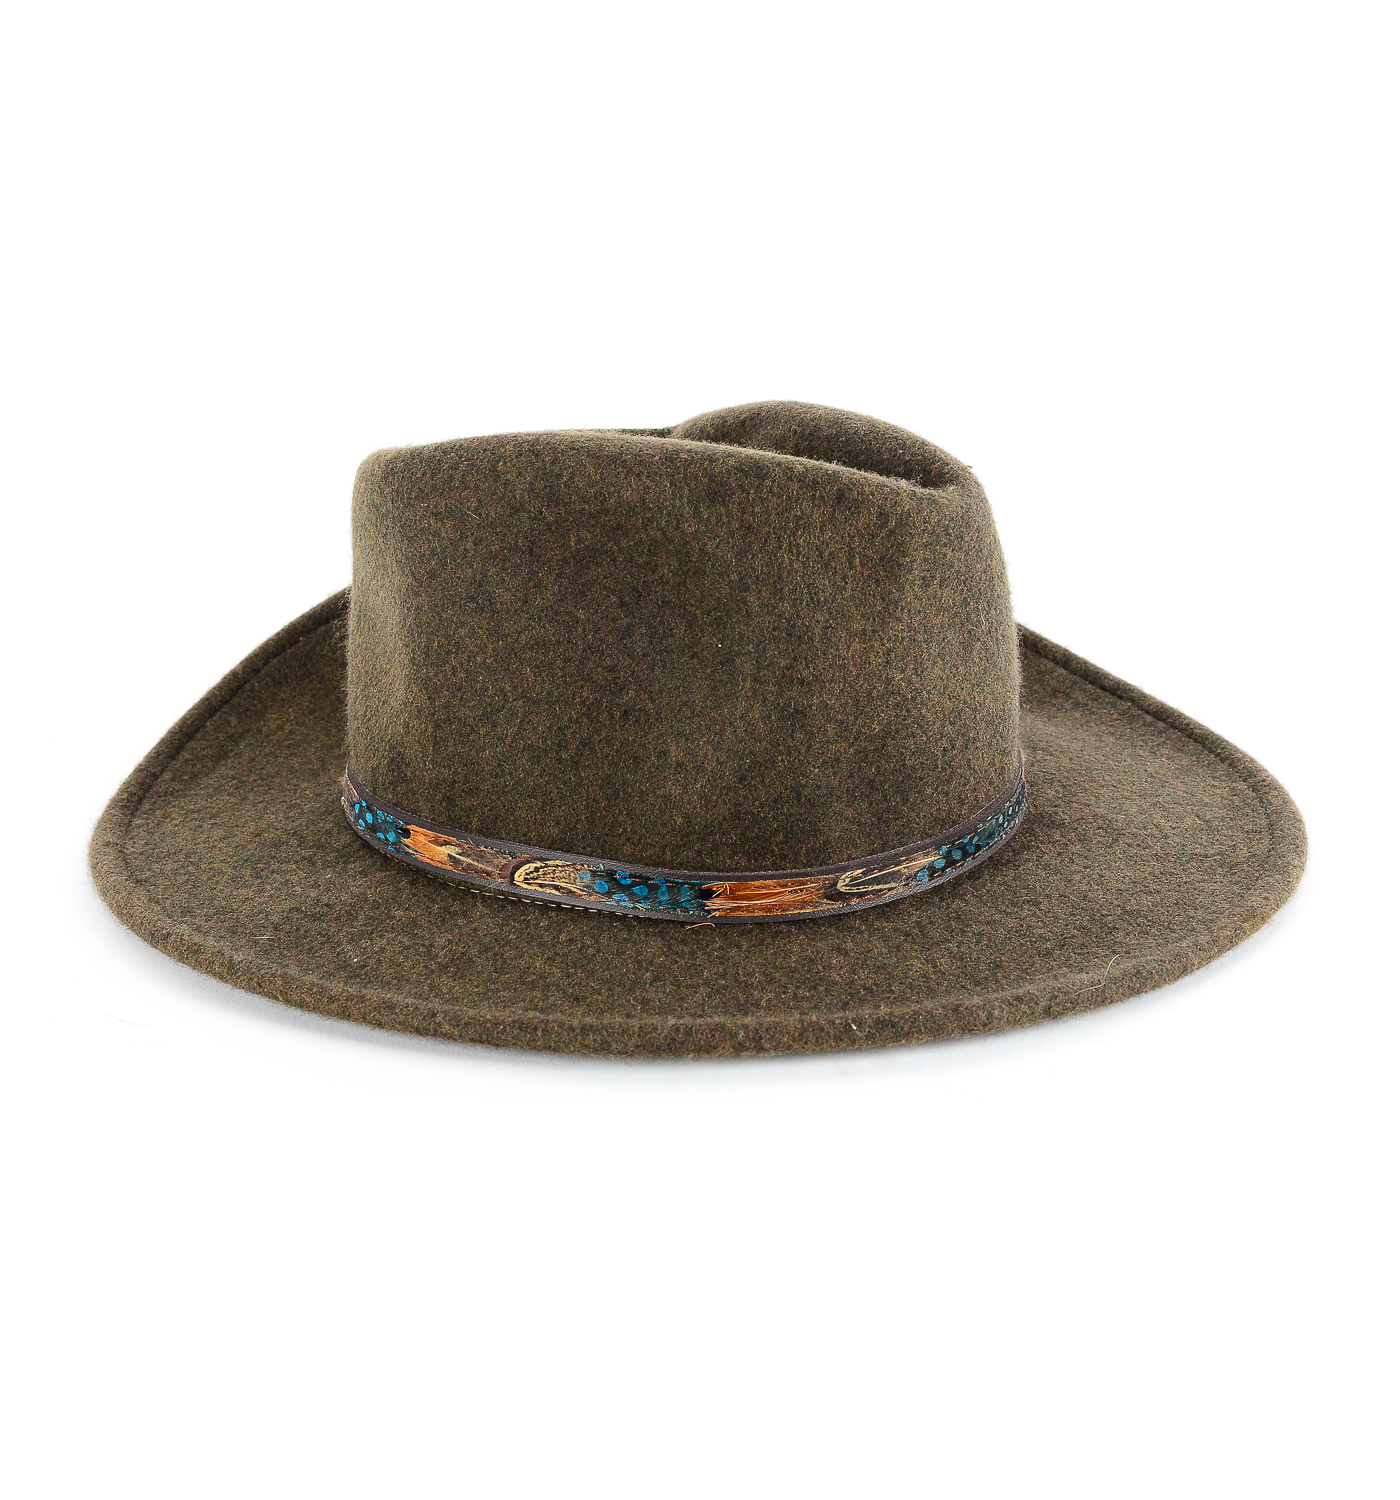 Stetson expedition wool felt fedora ebth jpg 880x880 Stetson expedition  crushable wool hat f262ccf510c